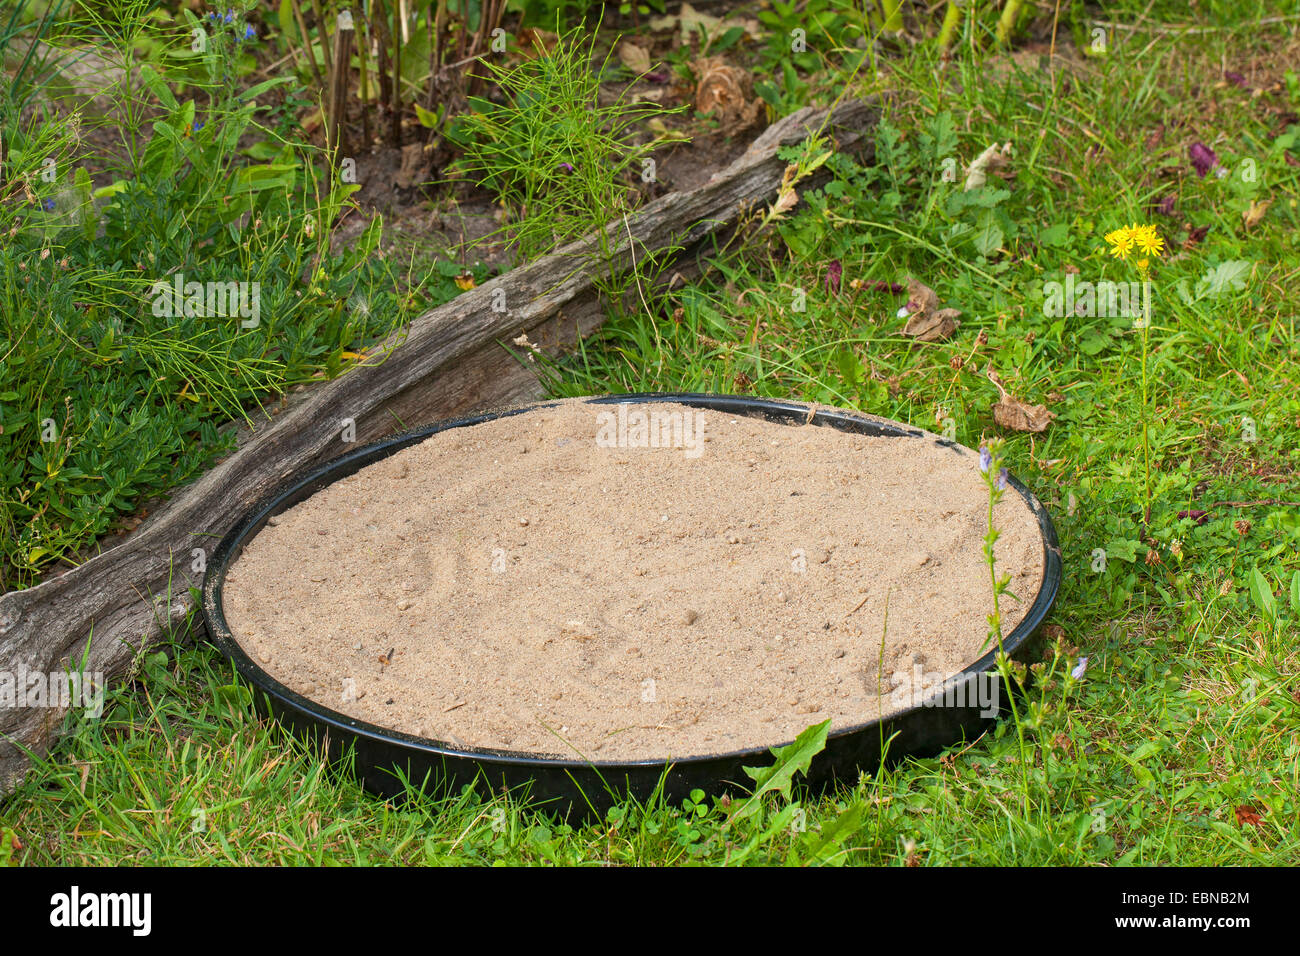 sand bath for sparrows in the garden, Germany - Stock Image